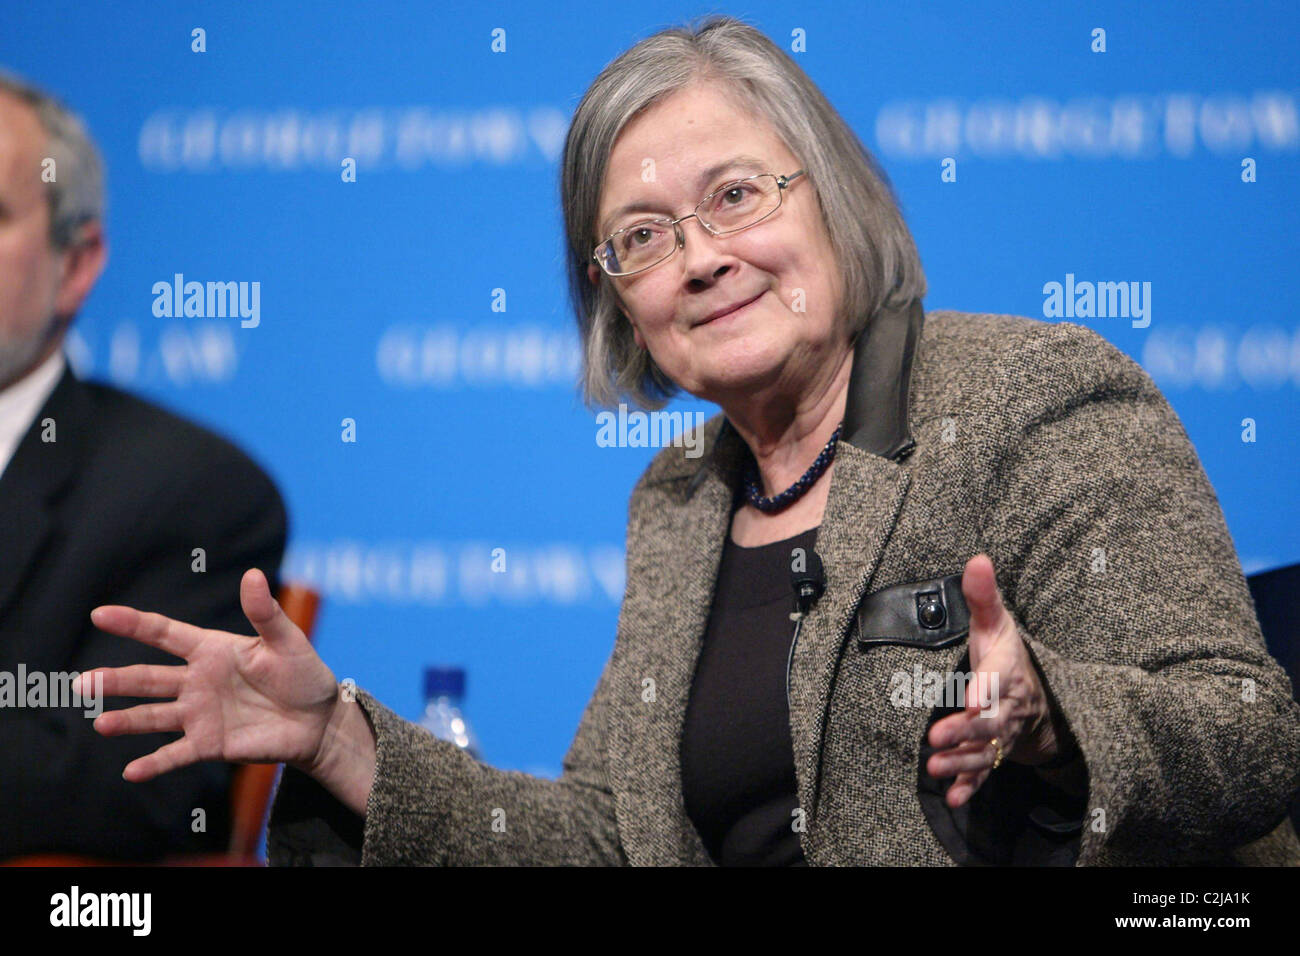 Brenda Hale, Baroness Hale of Richmond The Supreme Court Fellows along with Georgetown Law School invited Brenda - Stock Image